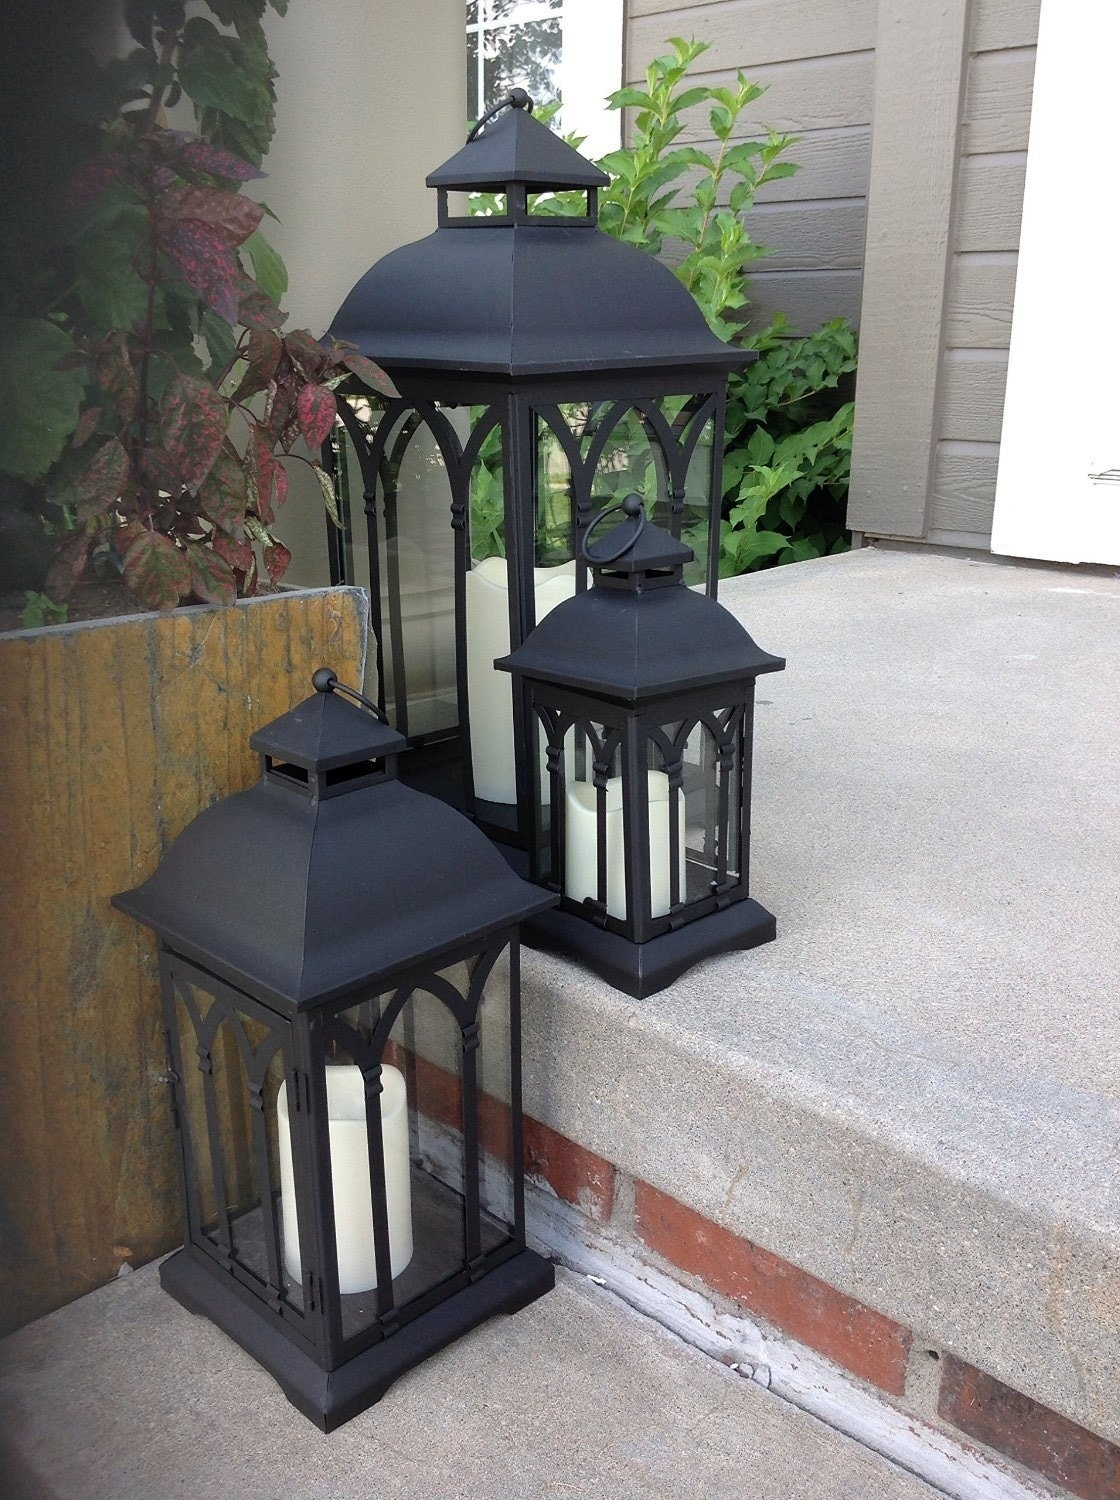 Best Rated In Outdoor Tabletop Lanterns & Helpful Customer Reviews regarding Outdoor Table Lanterns (Image 4 of 20)